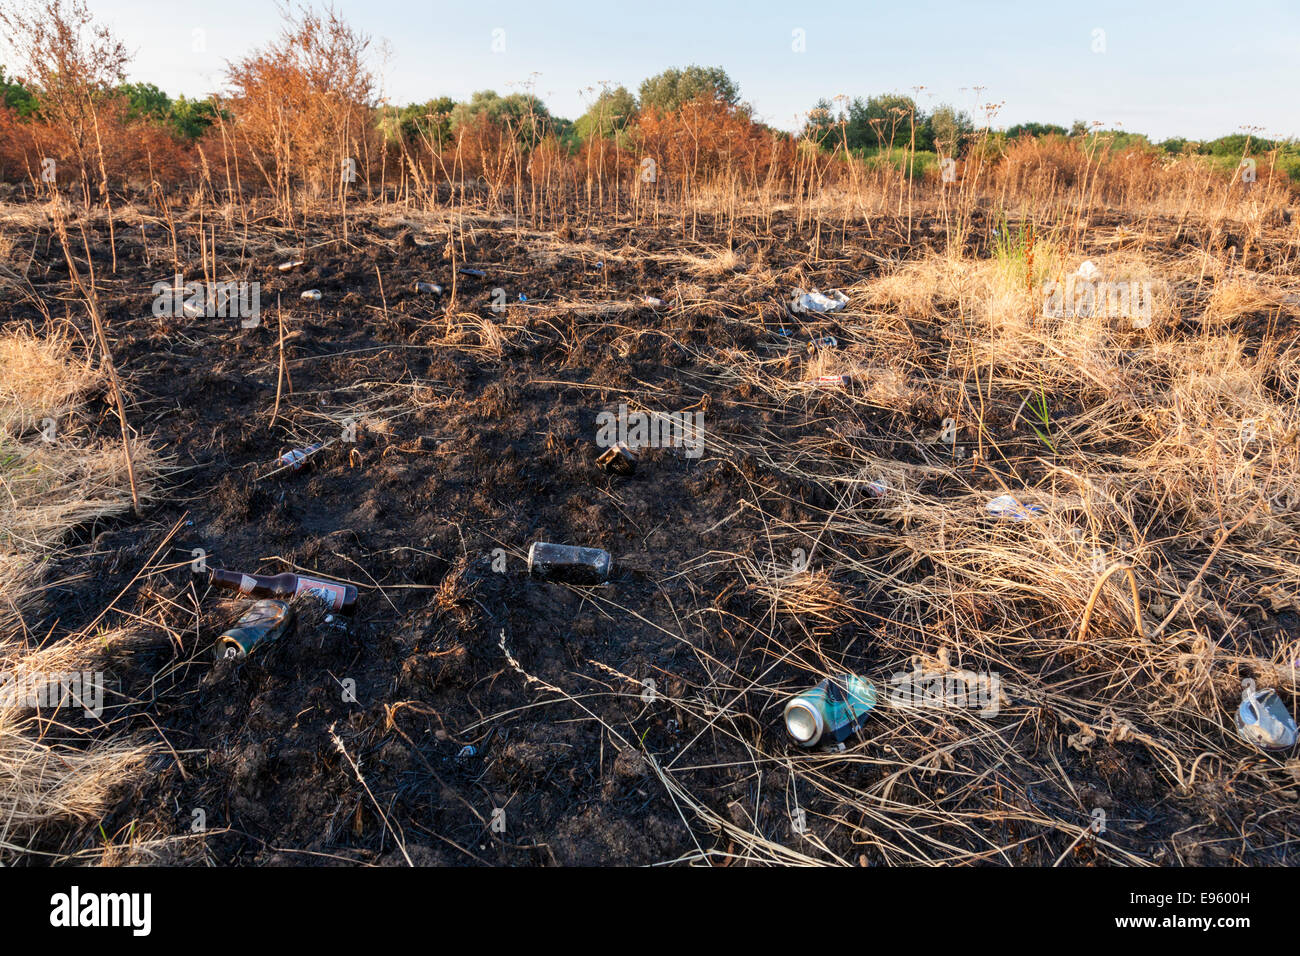 Fire damaged countryside. Litter of thrown away drinks cans and other rubbish revealed on the land after a grass - Stock Image